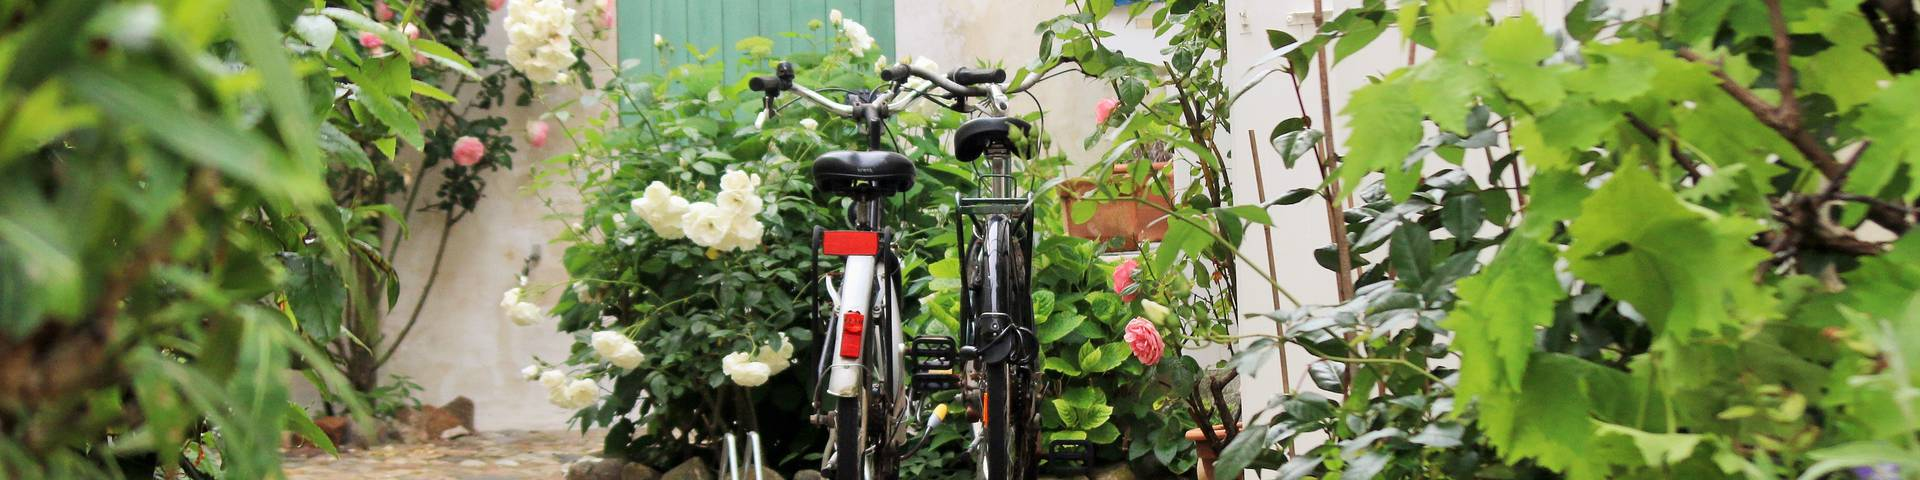 Bike rentals in Saint-Martin-de-Ré by Lesley Williamson